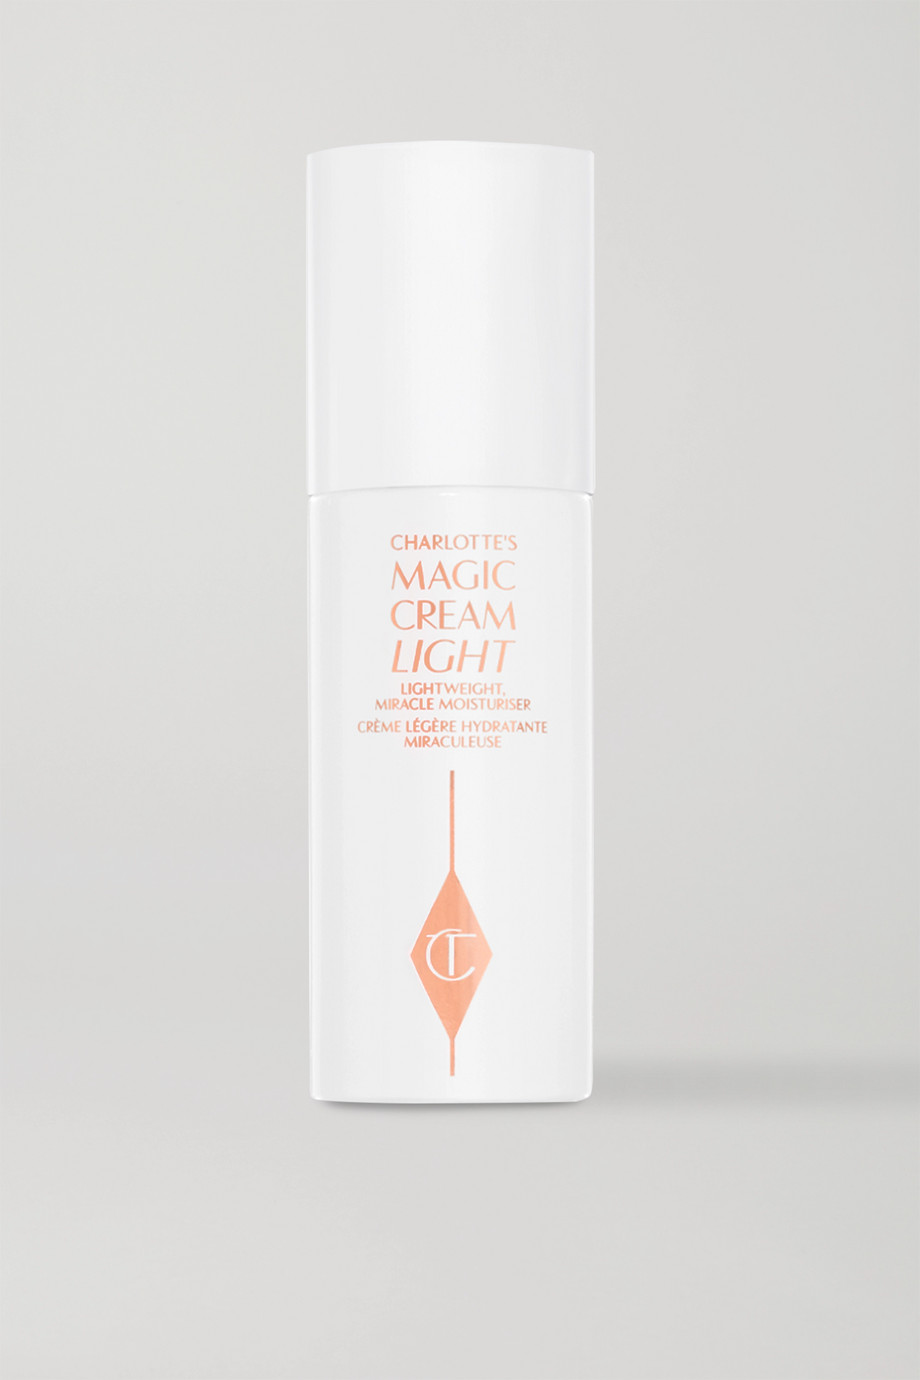 Charlotte Tilbury Charlotte's Magic Cream Light Moisturizer, 50ml